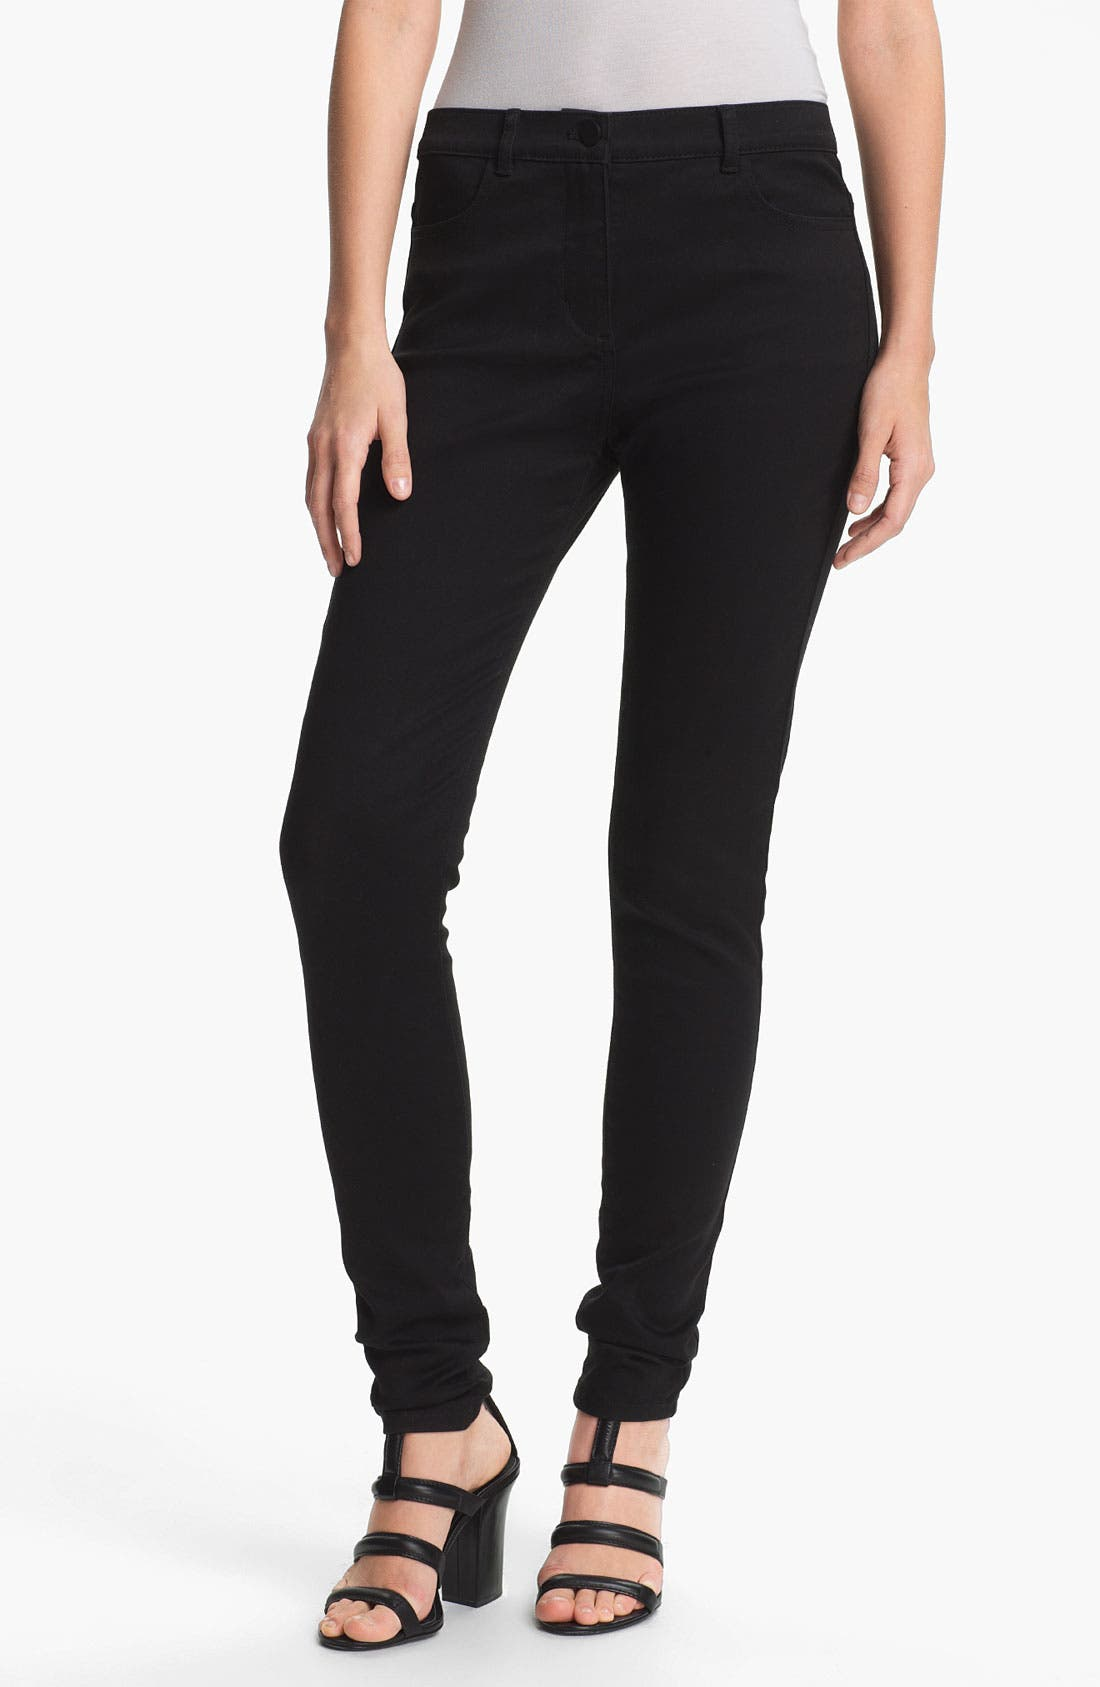 Alternate Image 1 Selected - T by Alexander Wang High Waist Stretch Sateen Jeans